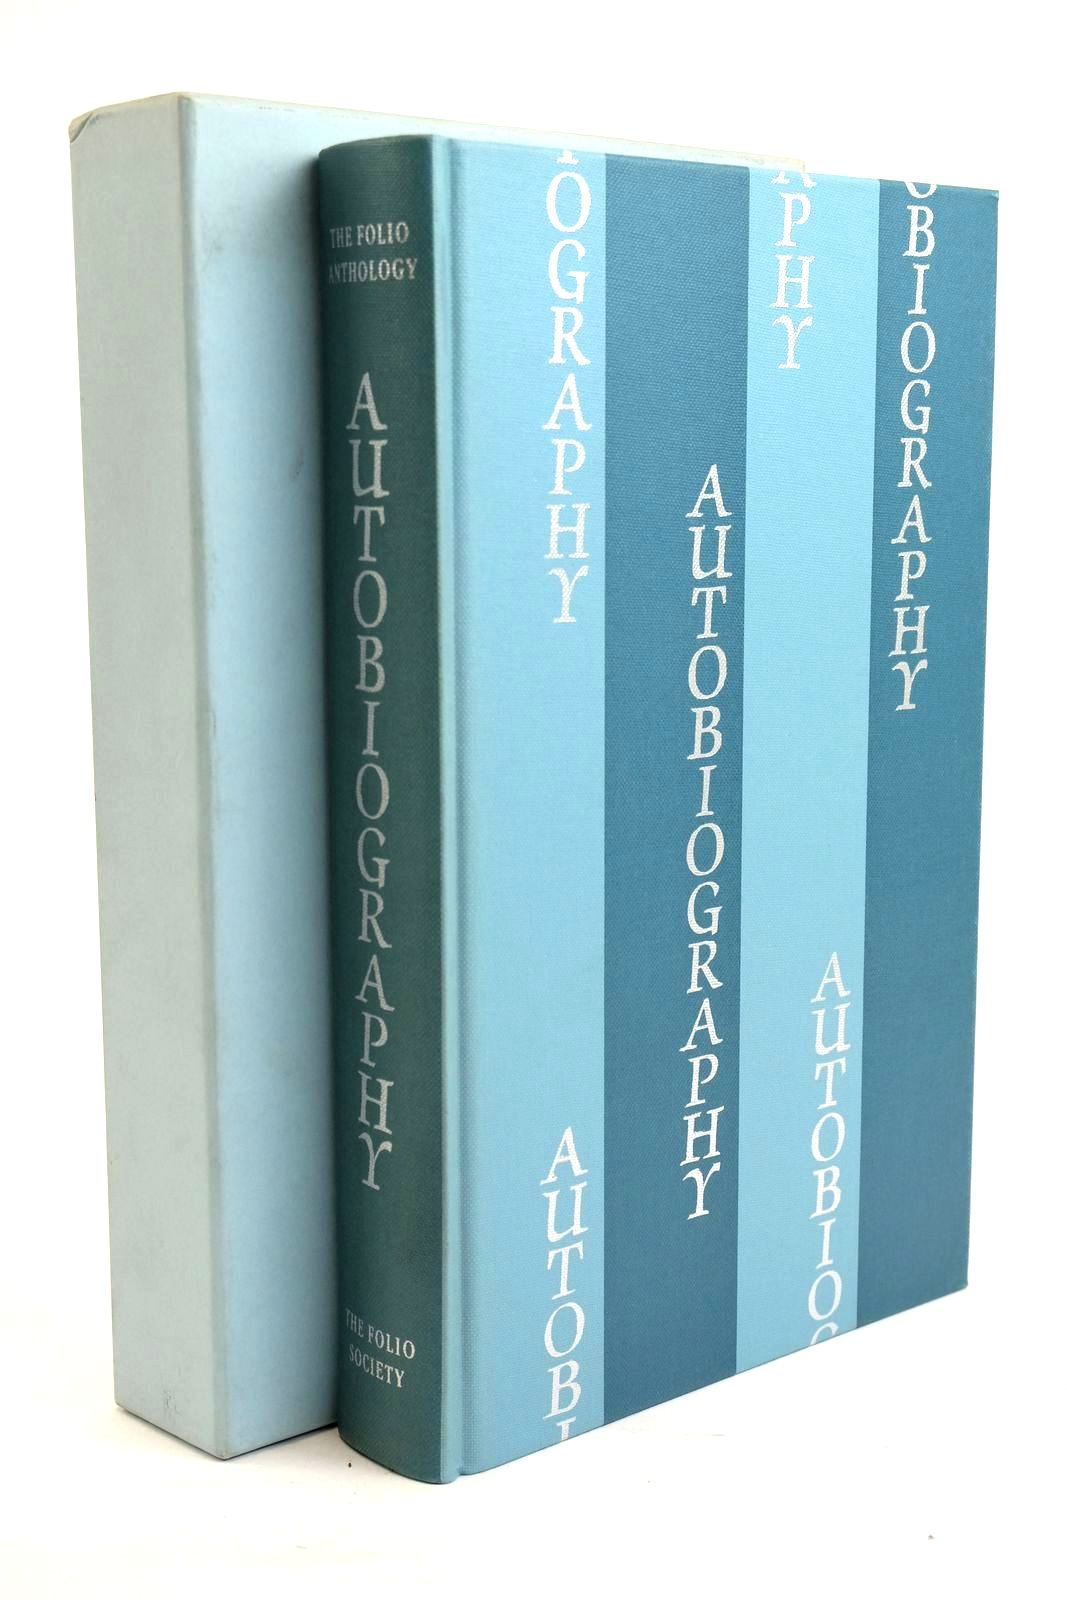 Photo of THE FOLIO ANTHOLOGY OF AUTOBIOGRAPHY written by Thirlwell, Angela published by Folio Society (STOCK CODE: 1320344)  for sale by Stella & Rose's Books